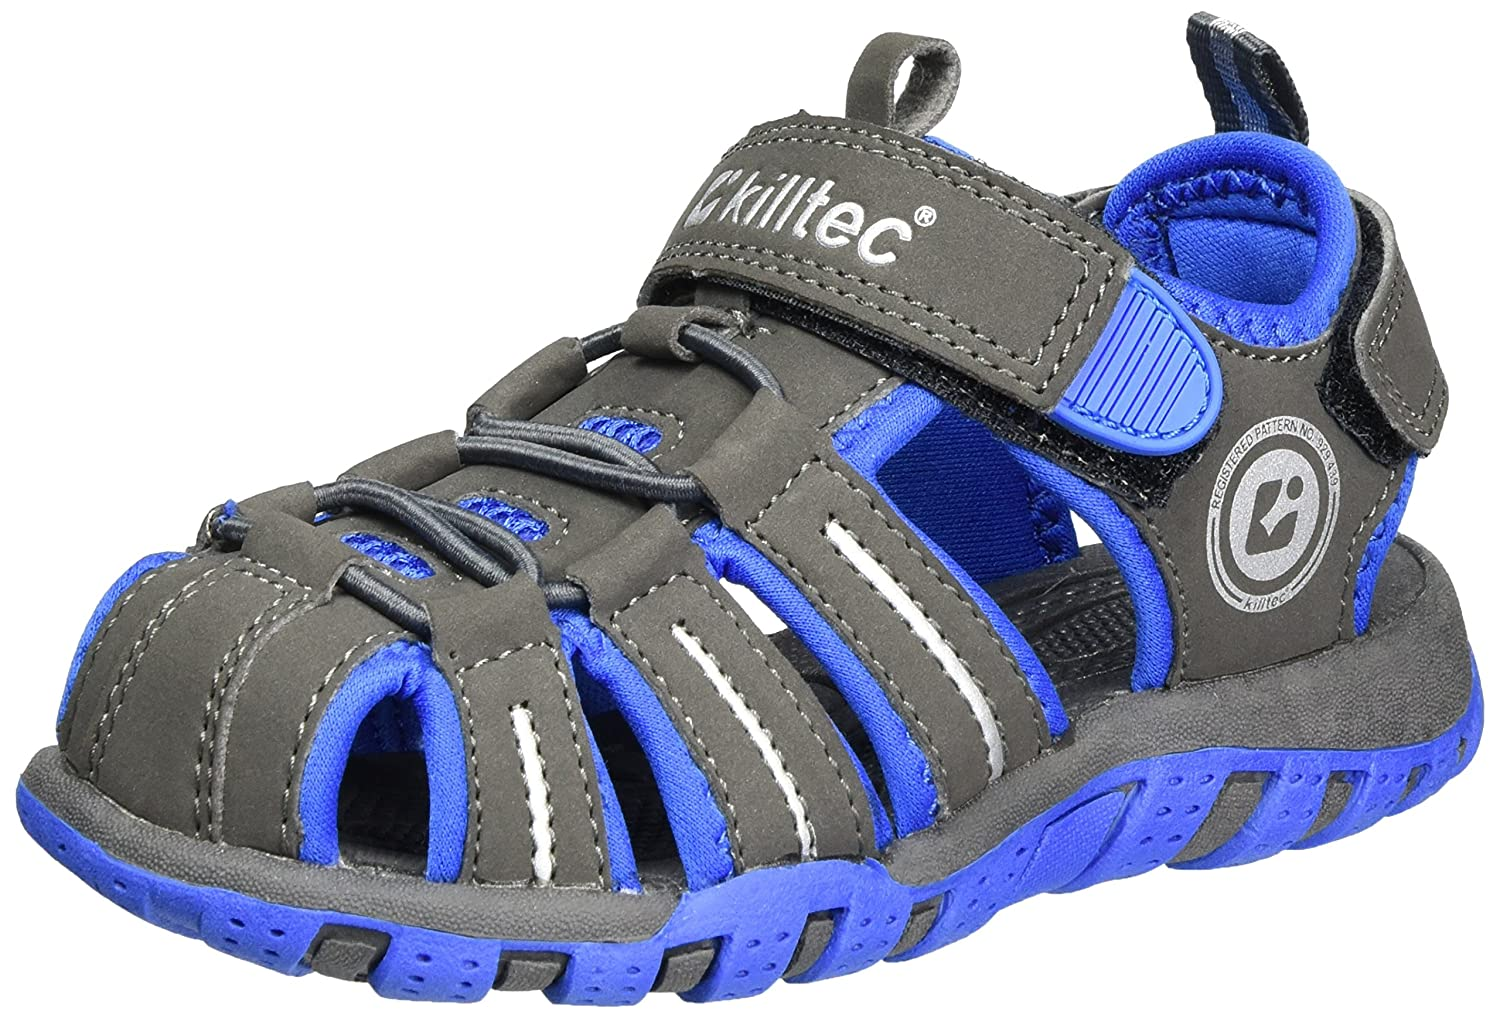 Killtec Jungen Marimba Jr Outdoor Sandalen 24598-000